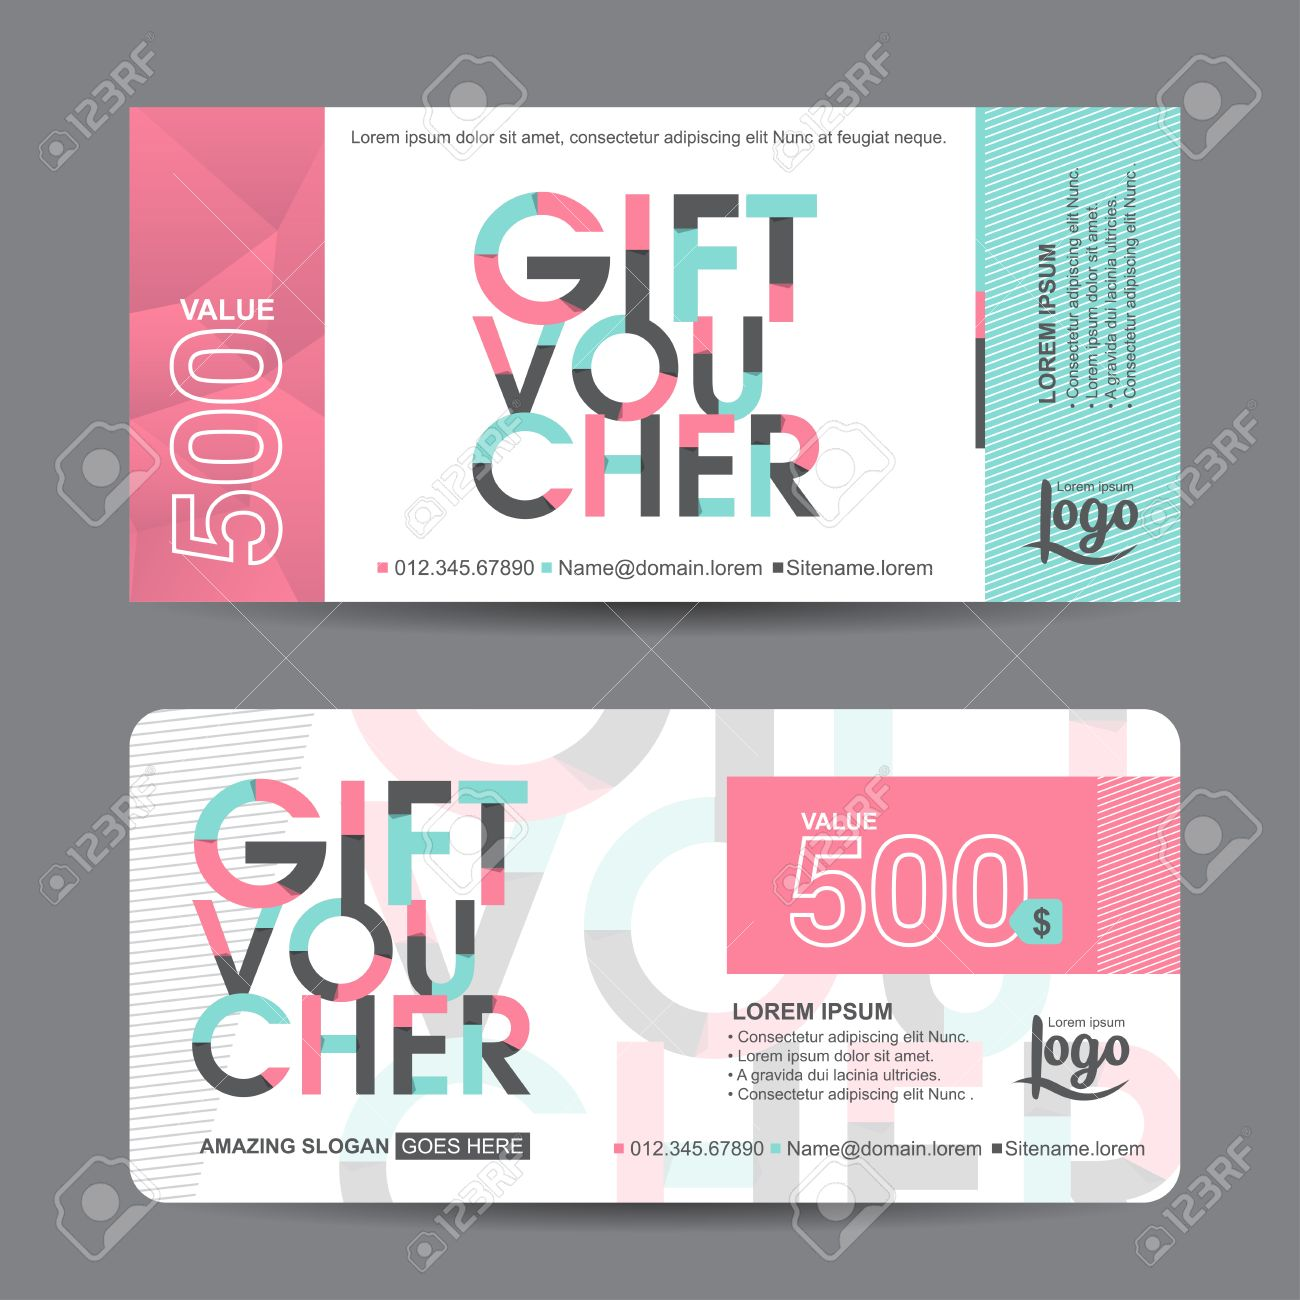 Gift voucher template with colorful patterncute gift voucher gift voucher template with colorful patterncute gift voucher certificate coupon design template collection yadclub